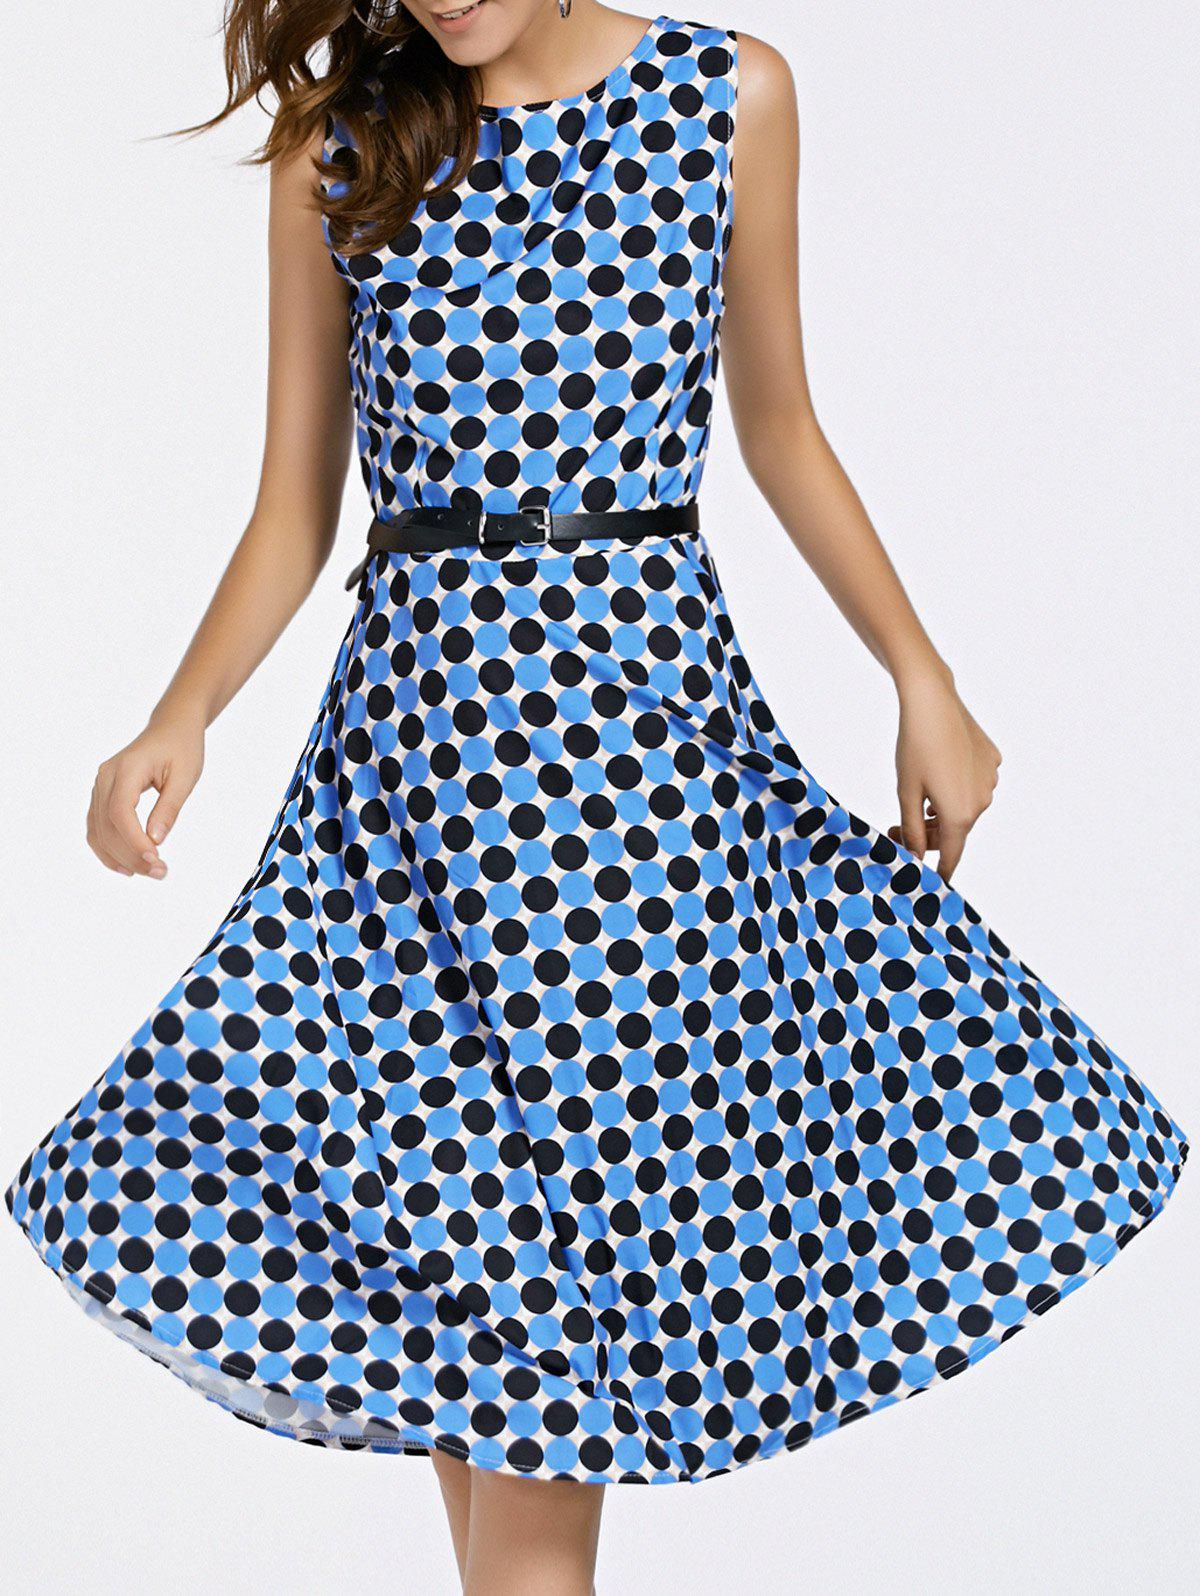 Retro Round Neck Sleeveless Polka Dot Print Women's Waist Slimming Dress